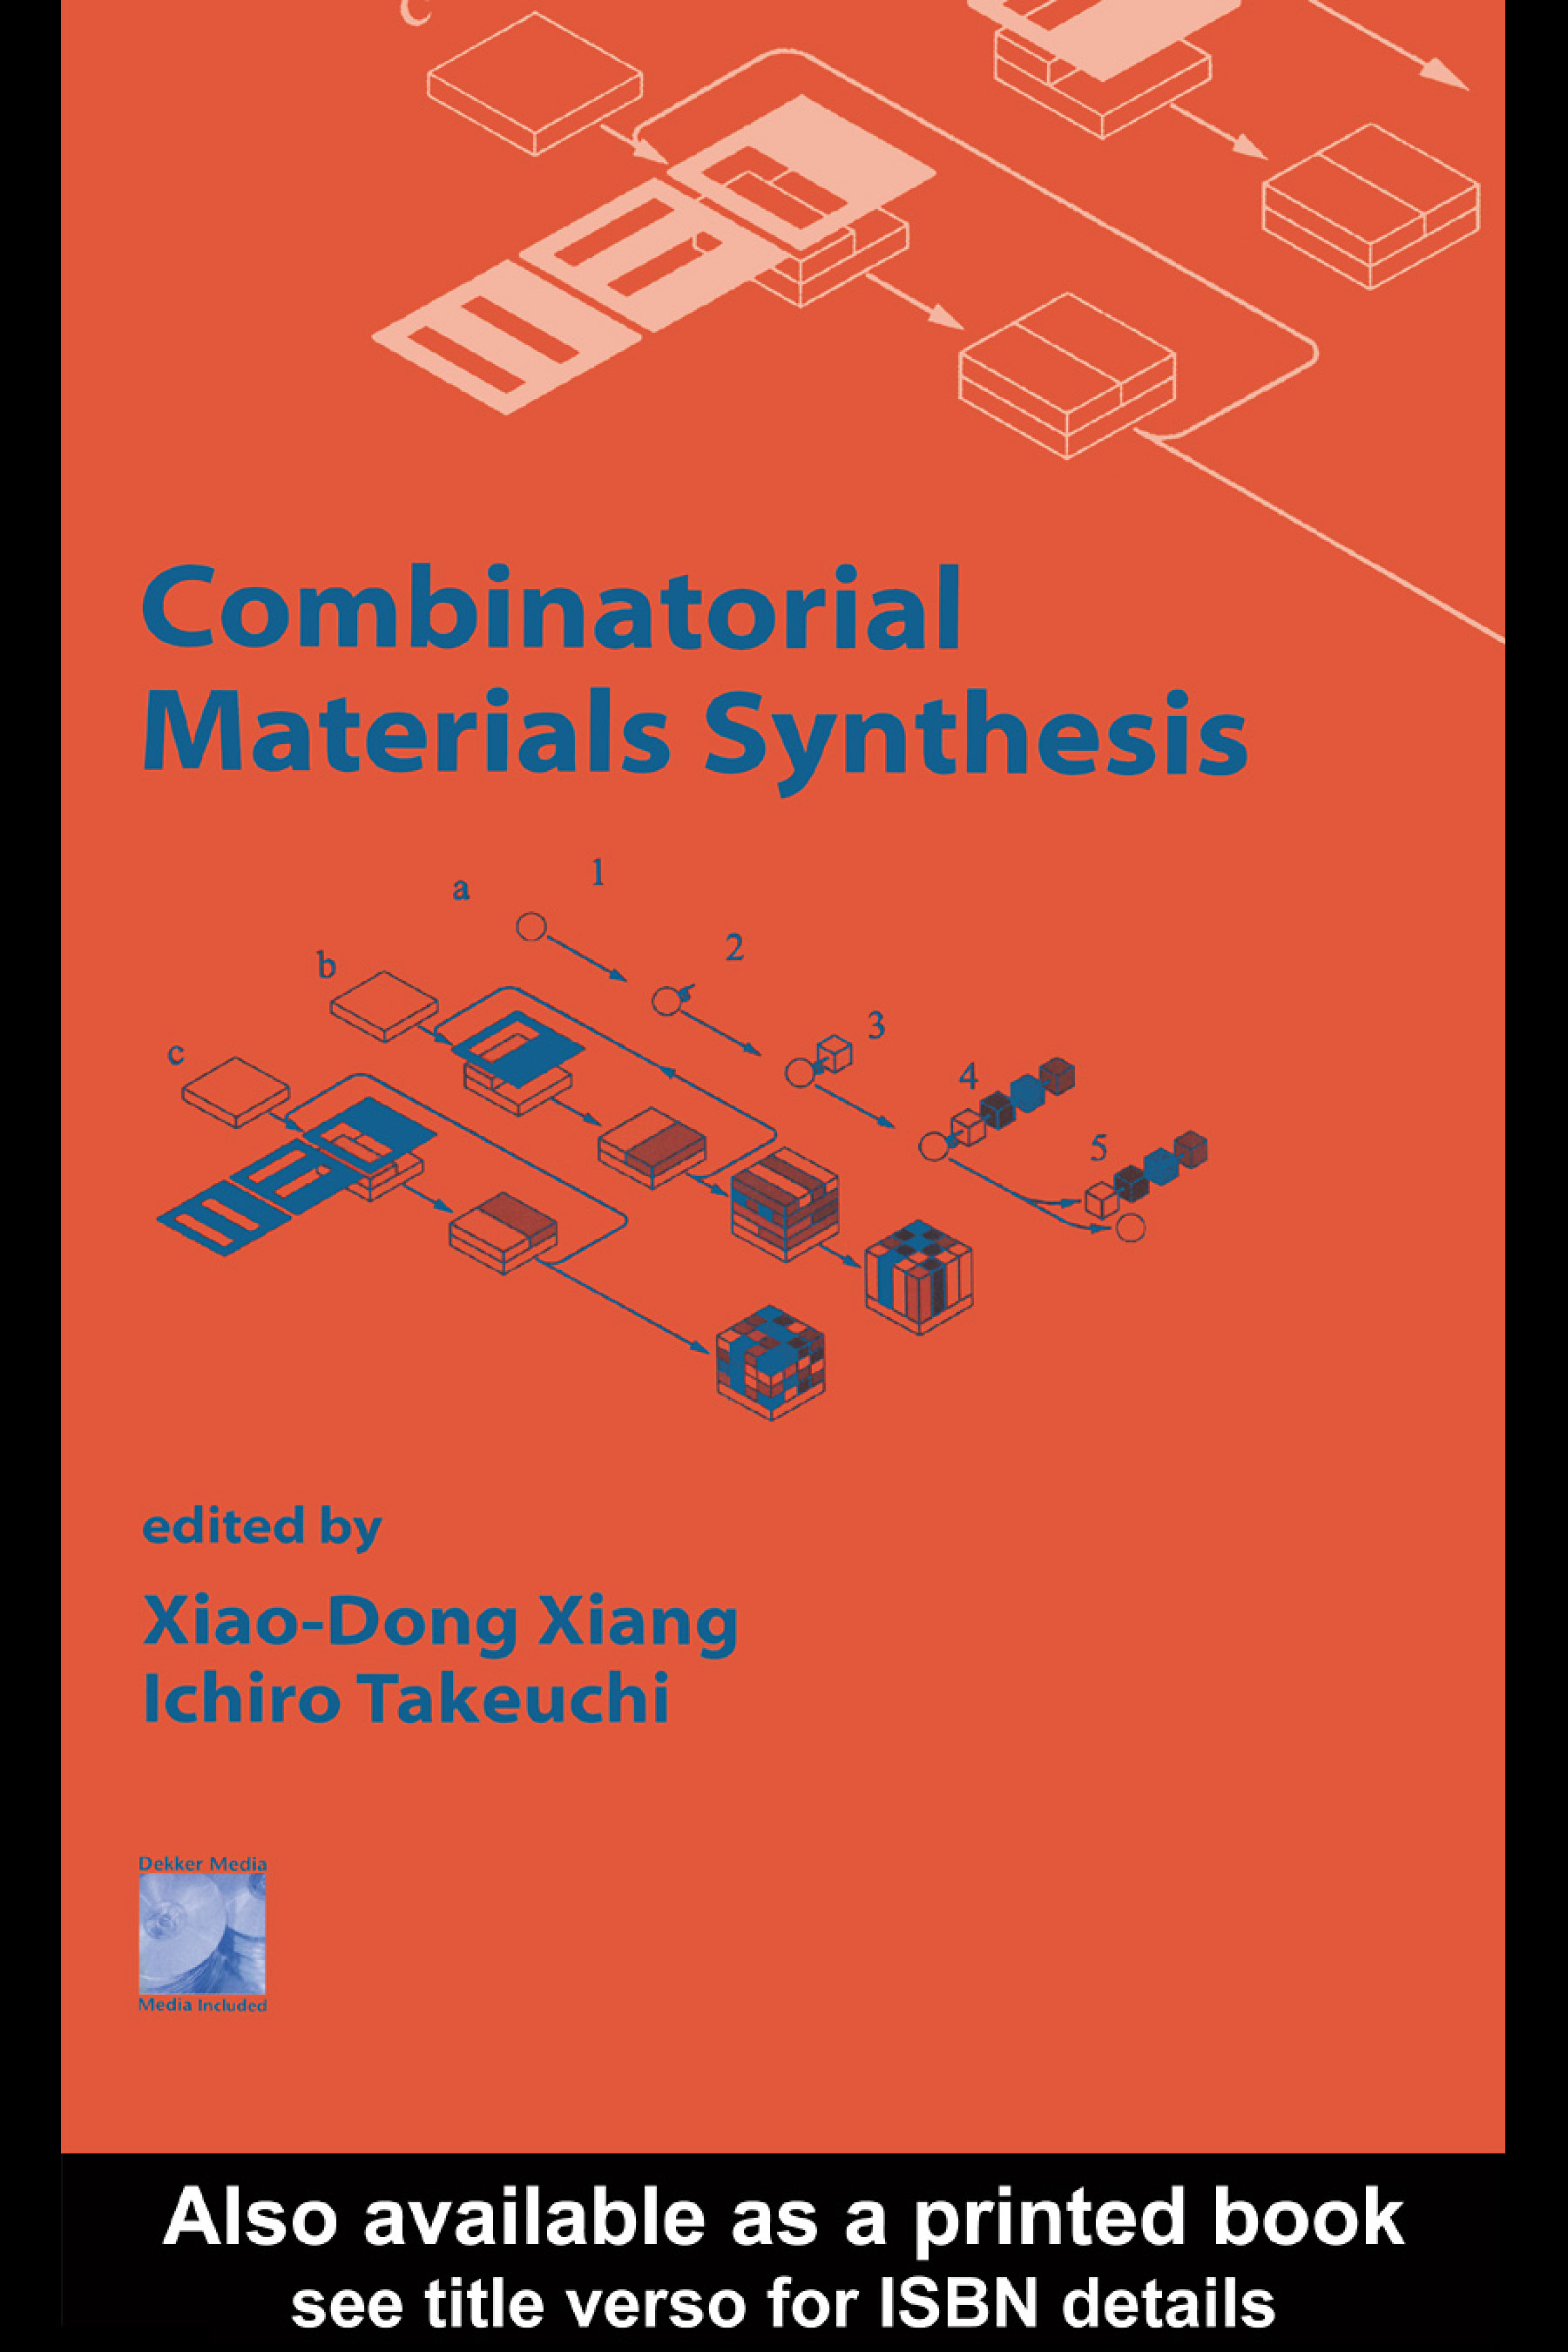 Combinatorial Materials Synthesis